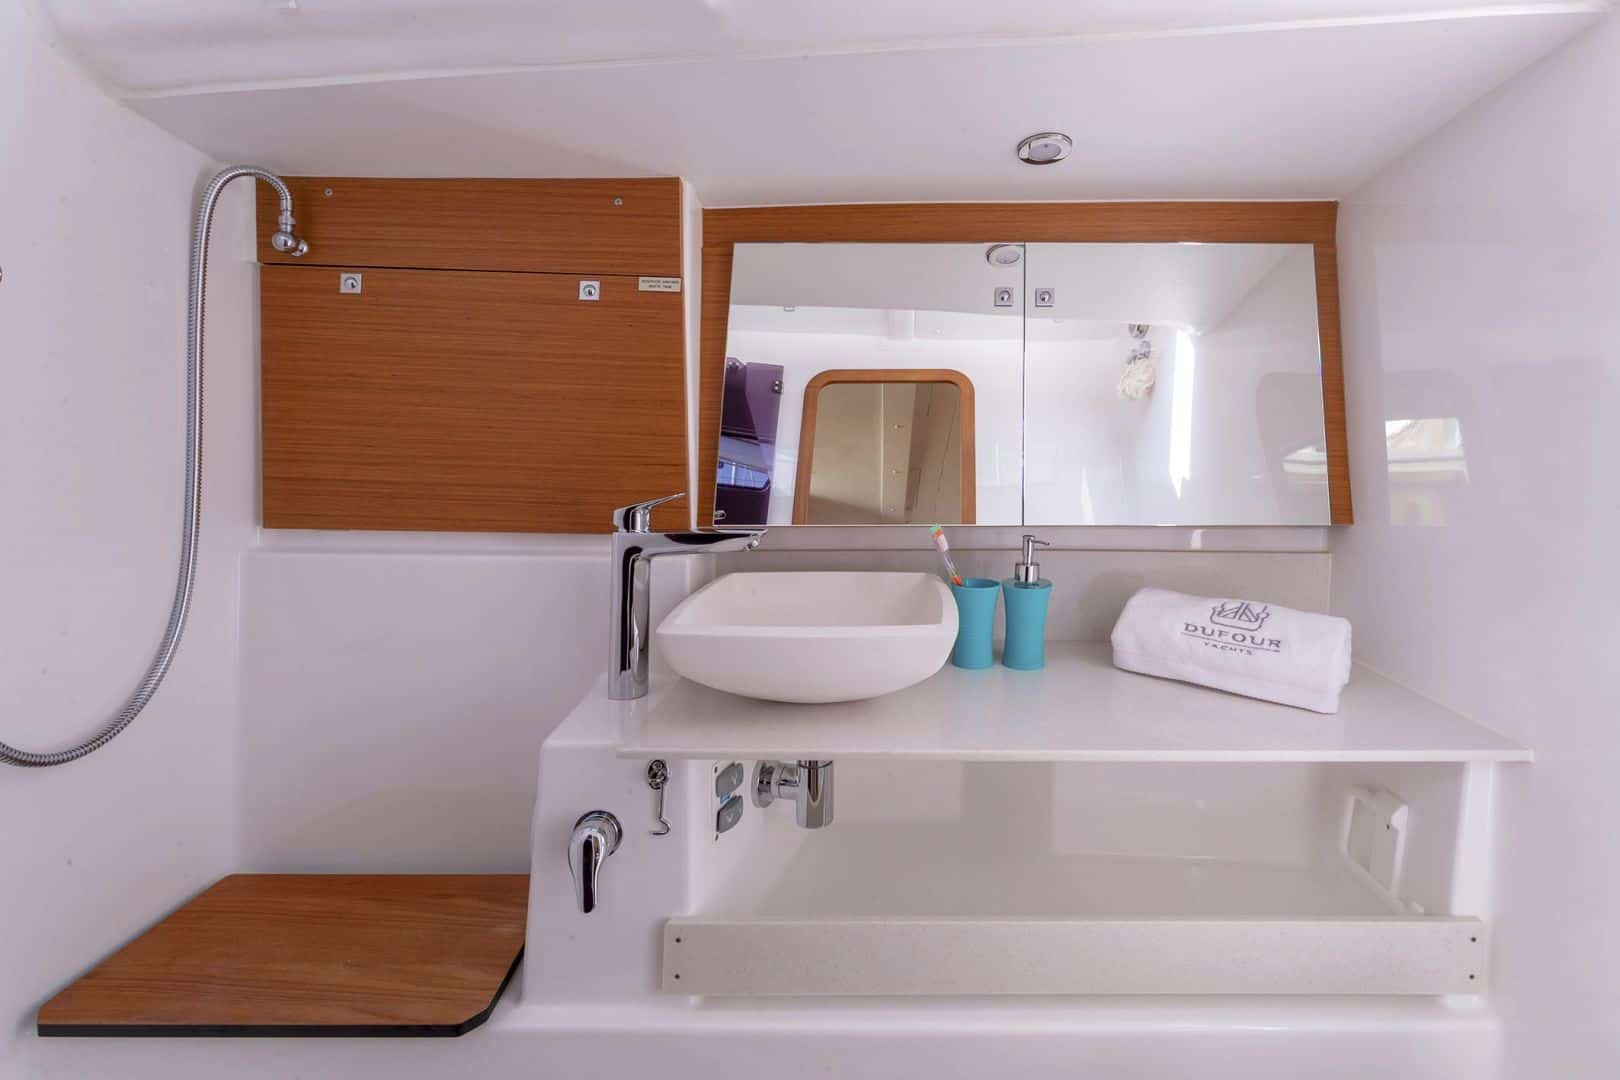 Sink and mirror in the head of the Dufour Grand Large 430 with home feeling design and beauty